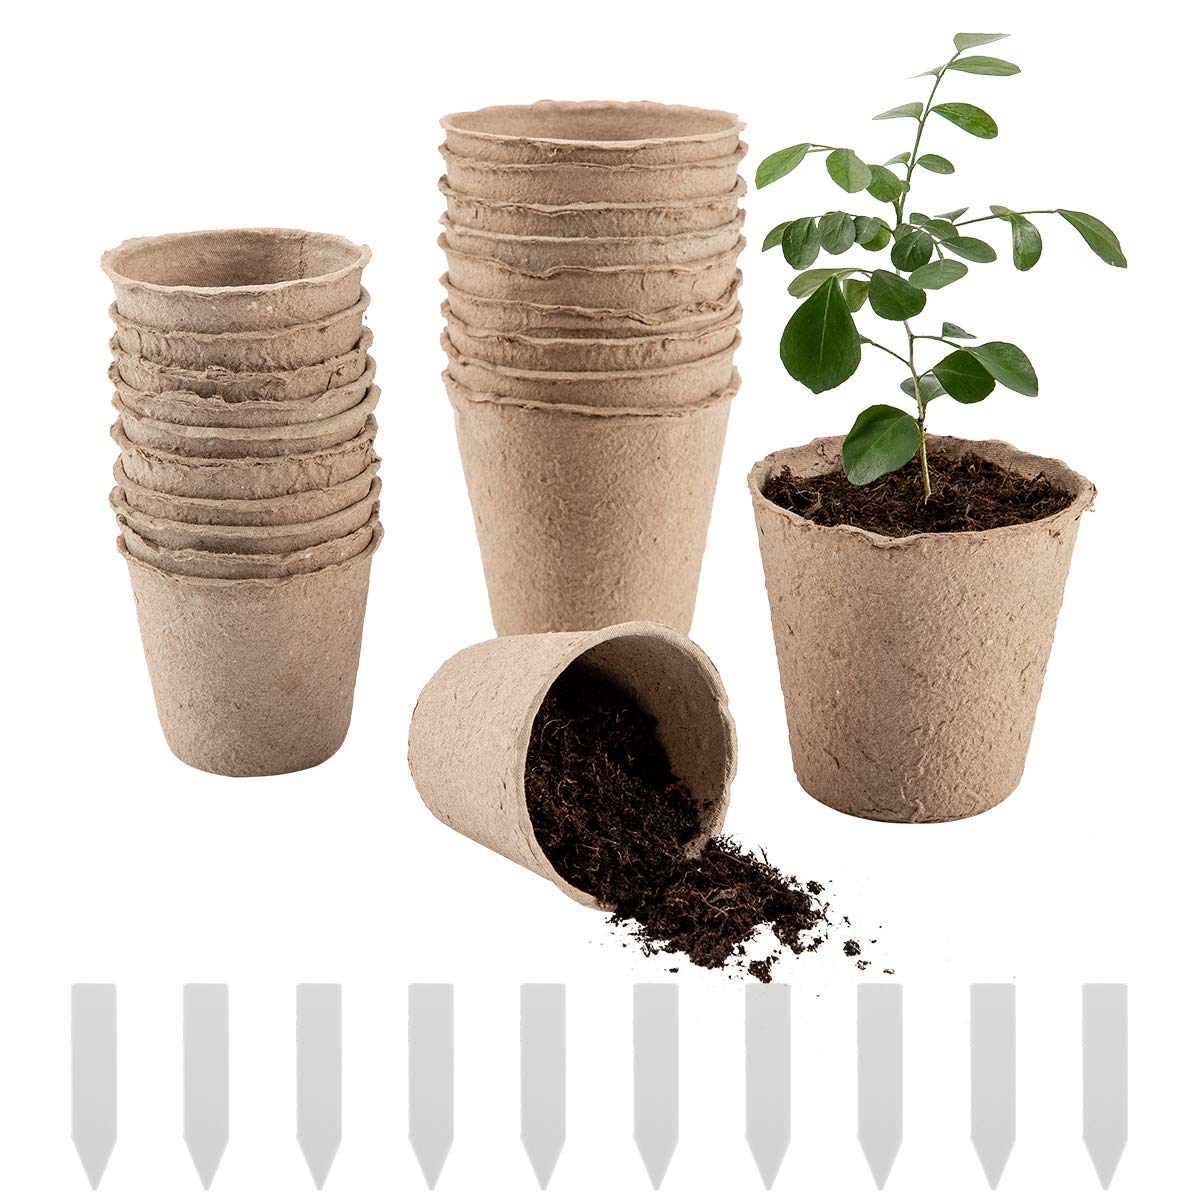 Cosweet 50 Pcs Peat Pots, Plant Seedling Saplings & Herb Seed Starters Kit, Vegetable Tomato Seed Germination Trays, 100% Eco-Friendly and Biodegradable with Bonus 10 Plastic Plant Markers